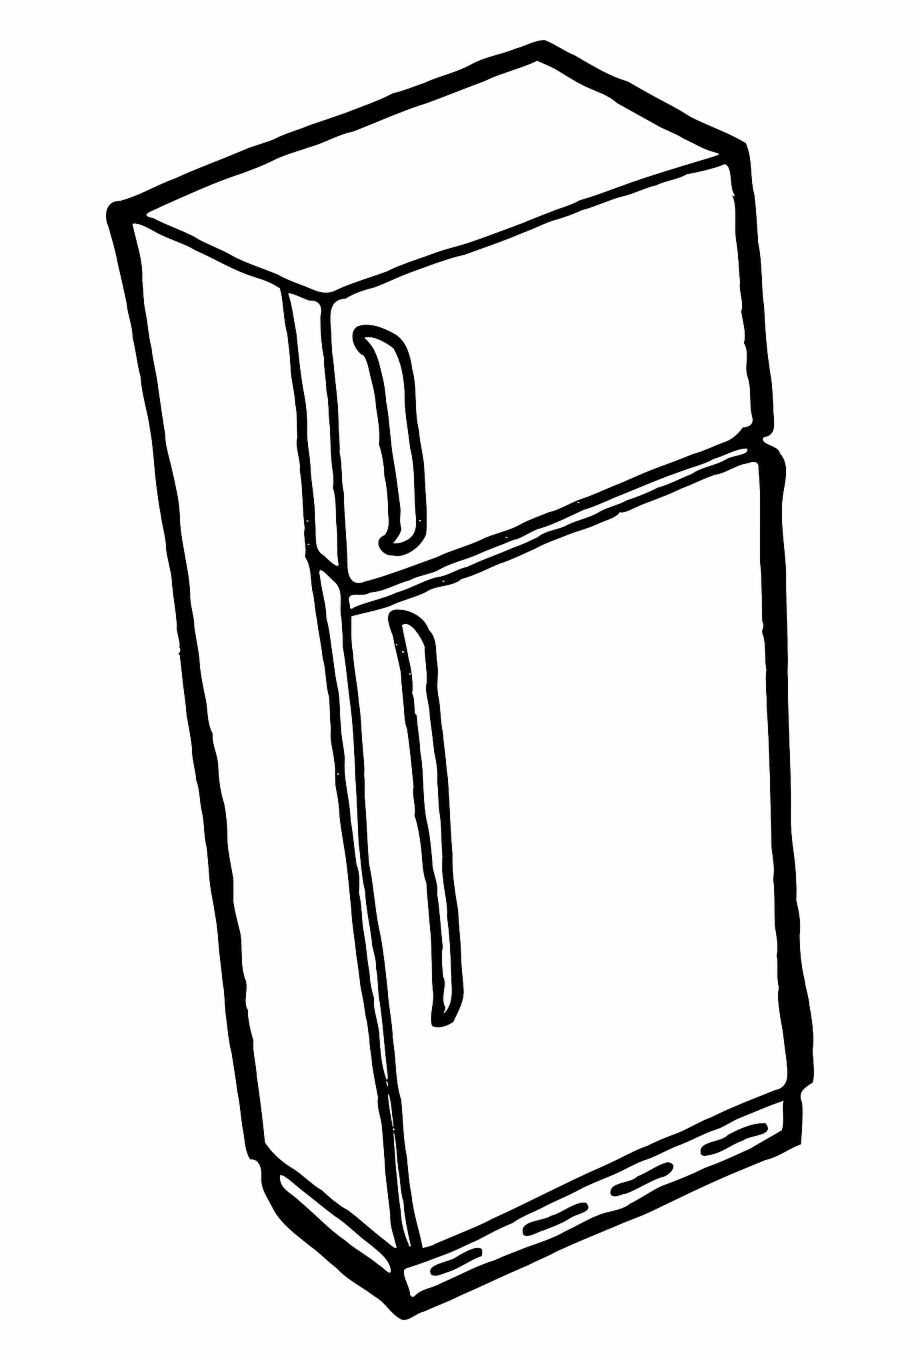 Refrigerator clipart free jpg royalty free Refrigerator Fridge Freezer Cold Png Image - Refrigerator ... jpg royalty free